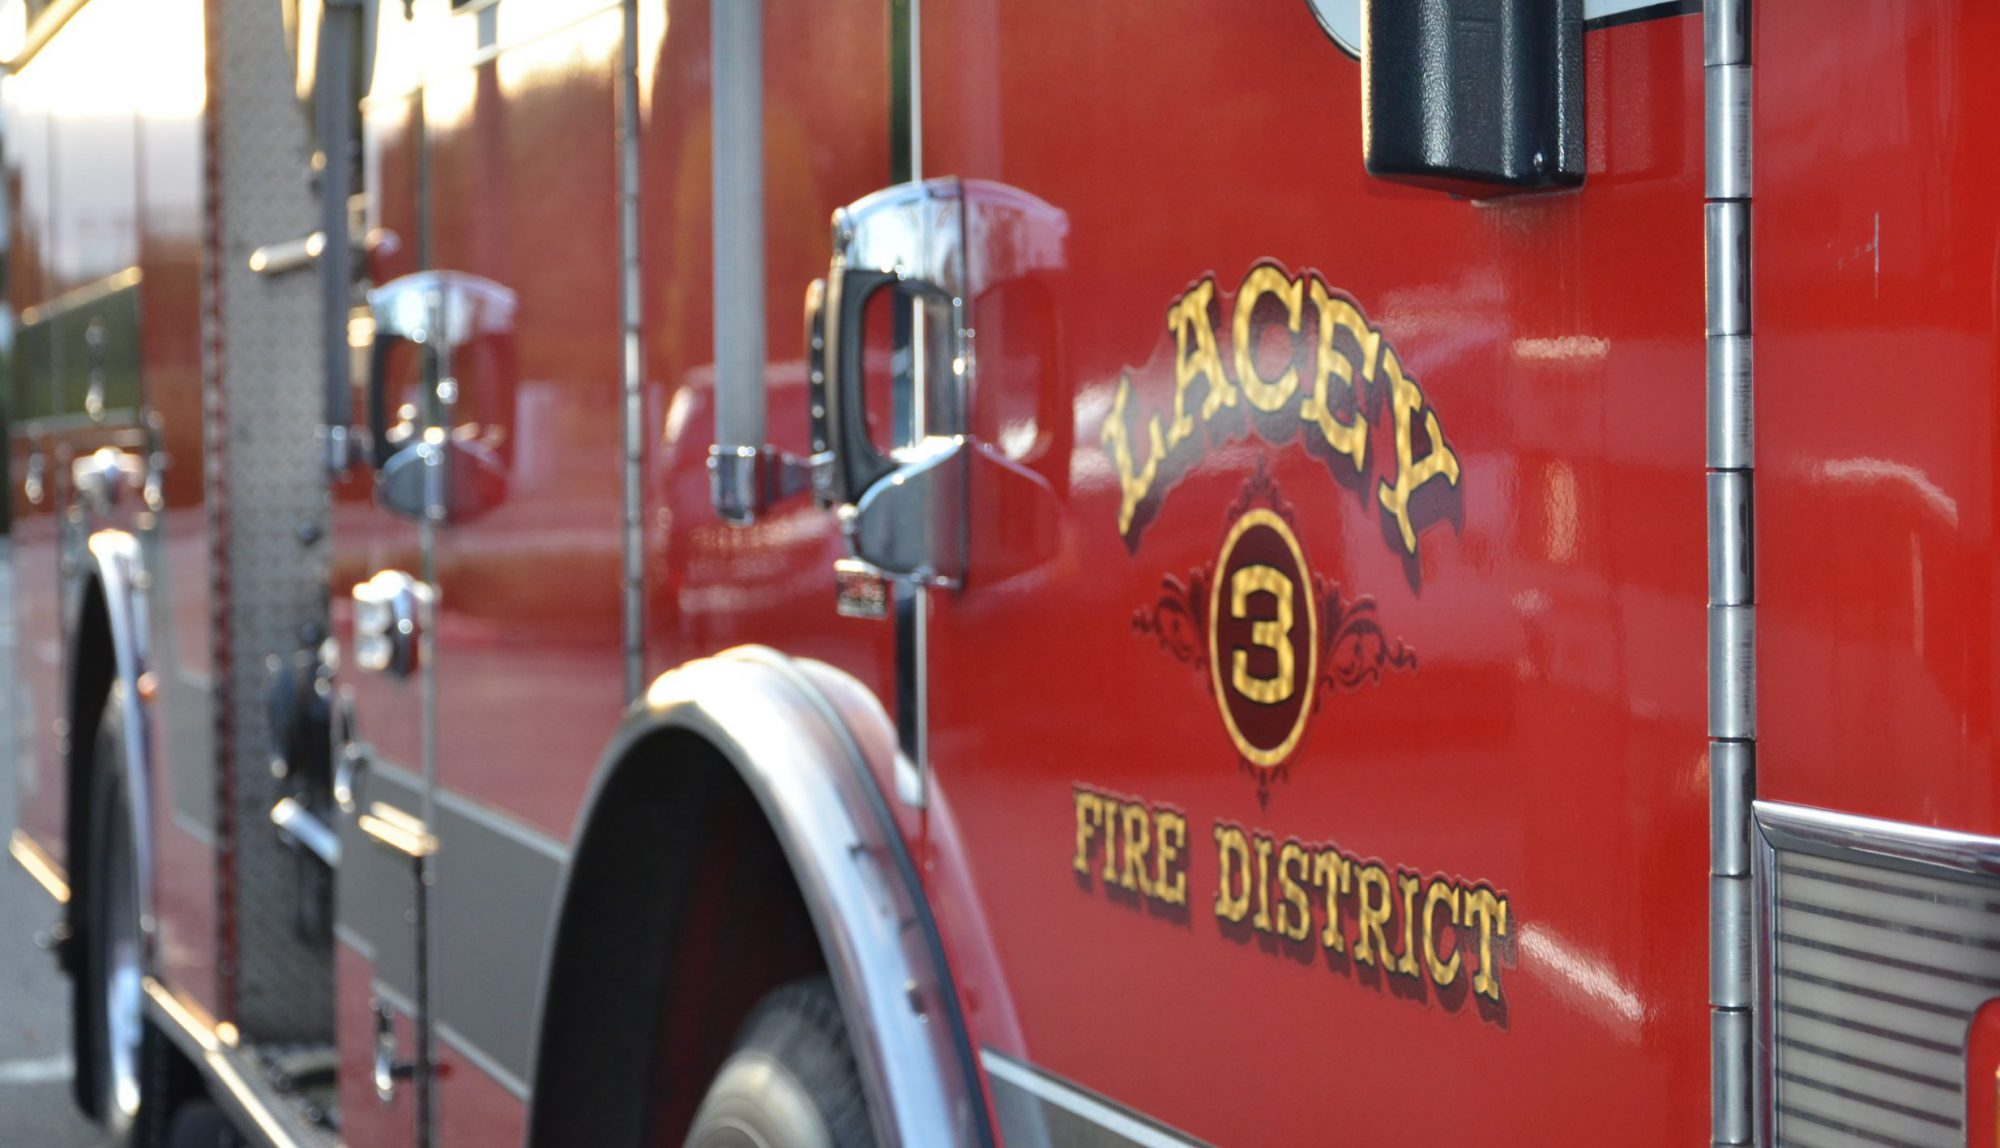 Lacey Fire District 3